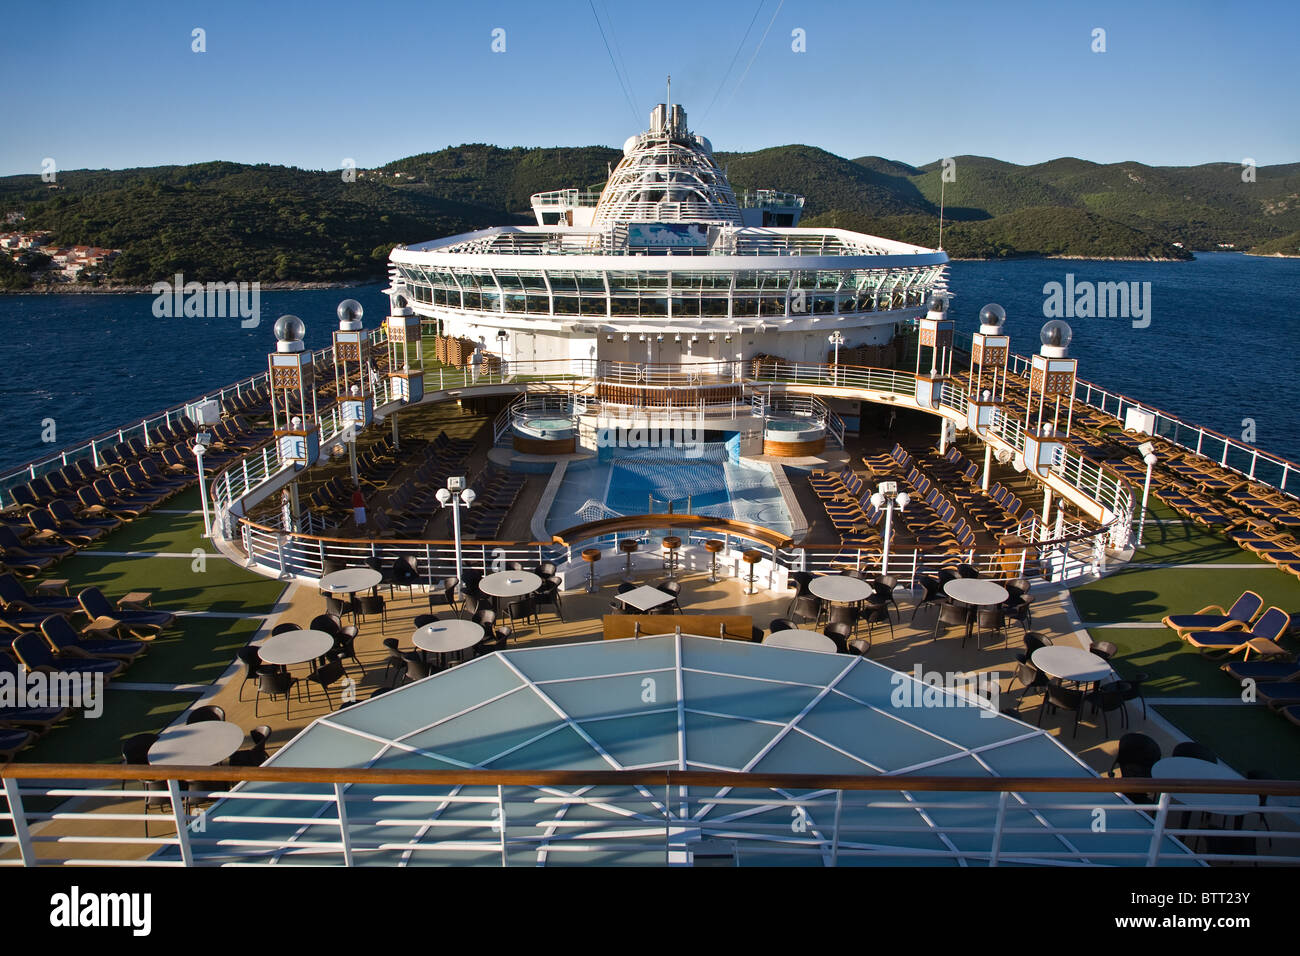 Azura cruise ship deck decks layout graphic detail - Stock Image